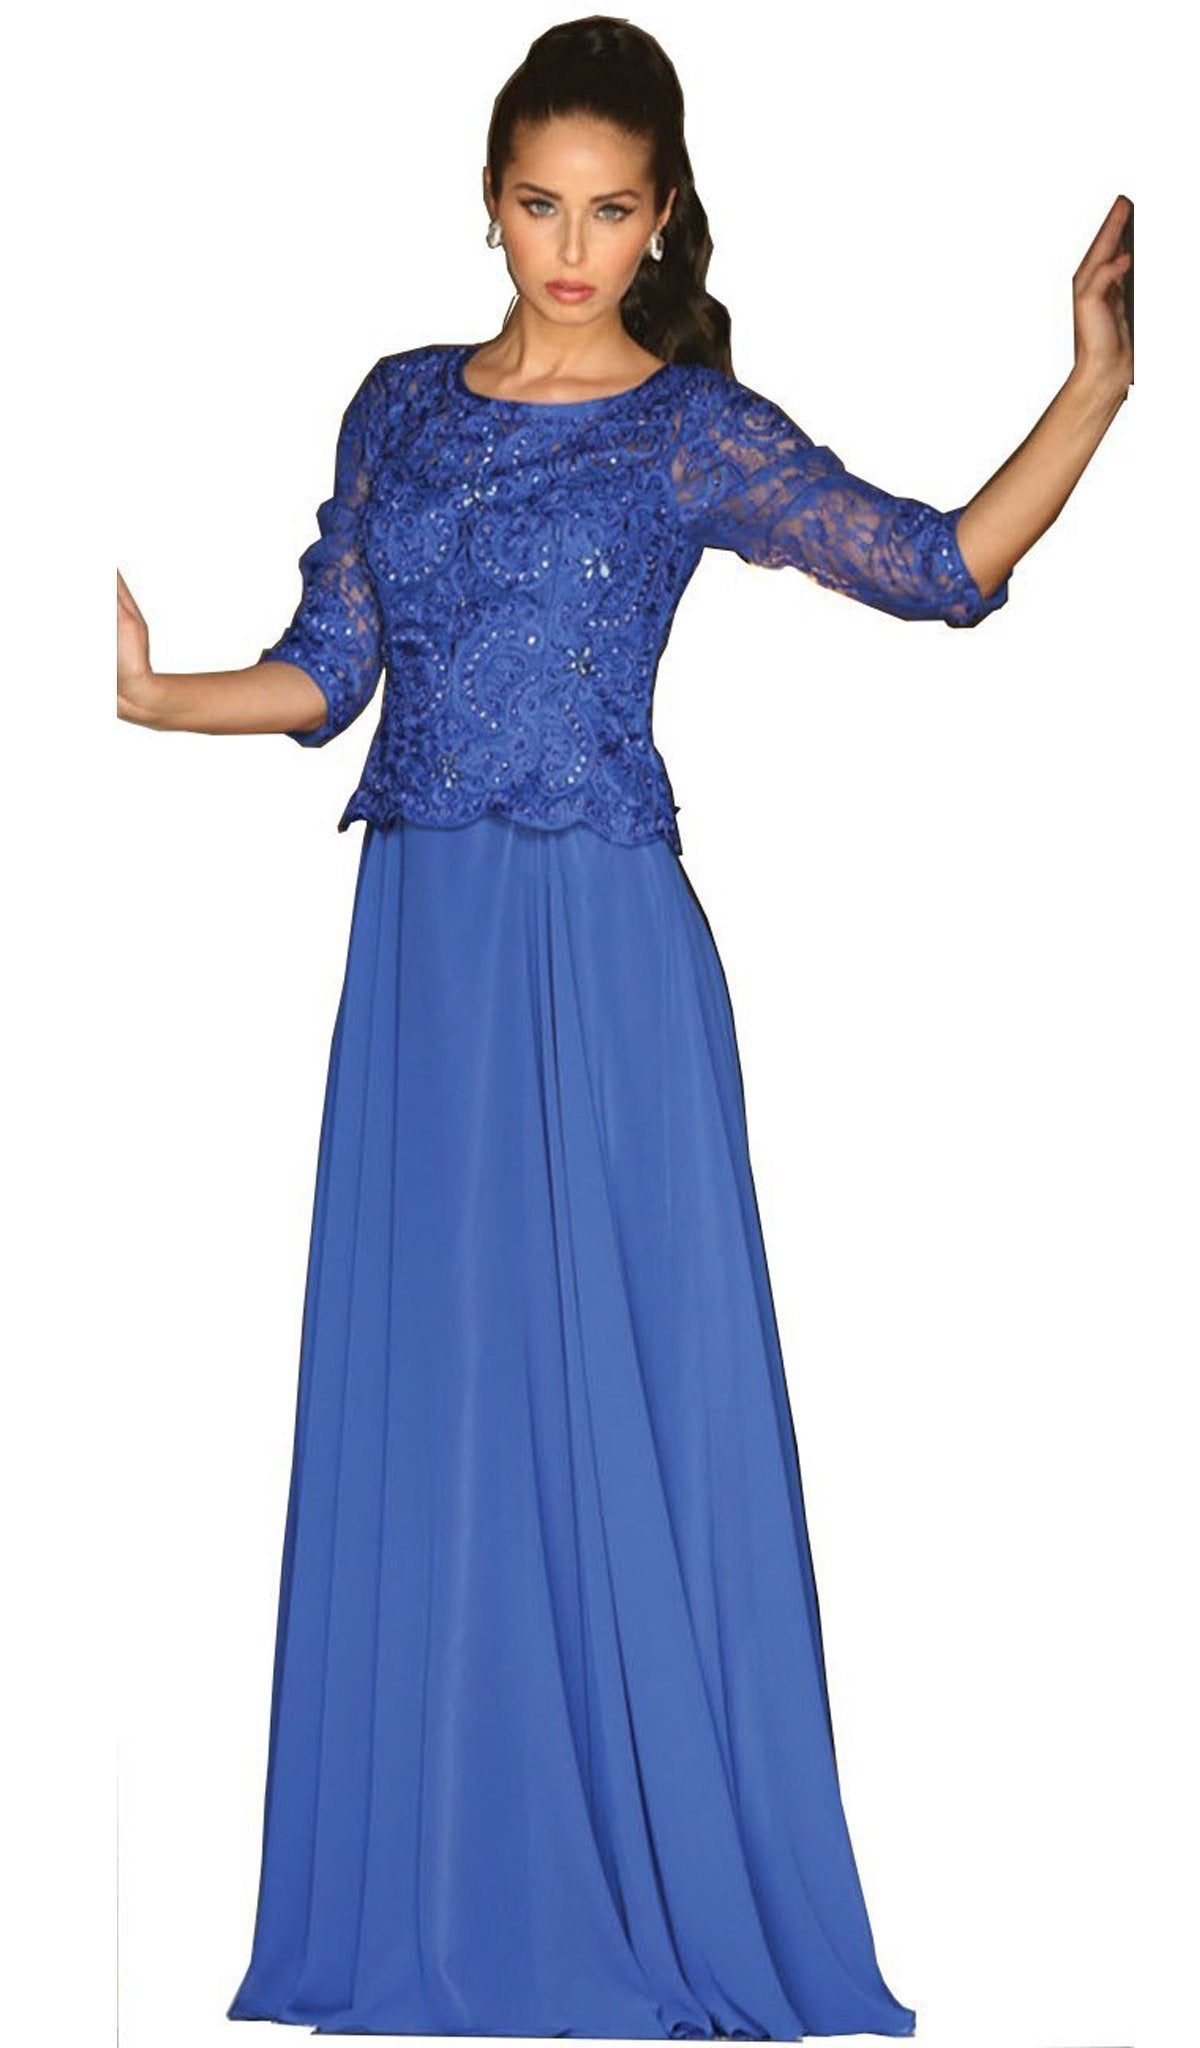 May Queen - Quarter Sleeve Lacy Chiffon Evening Gown